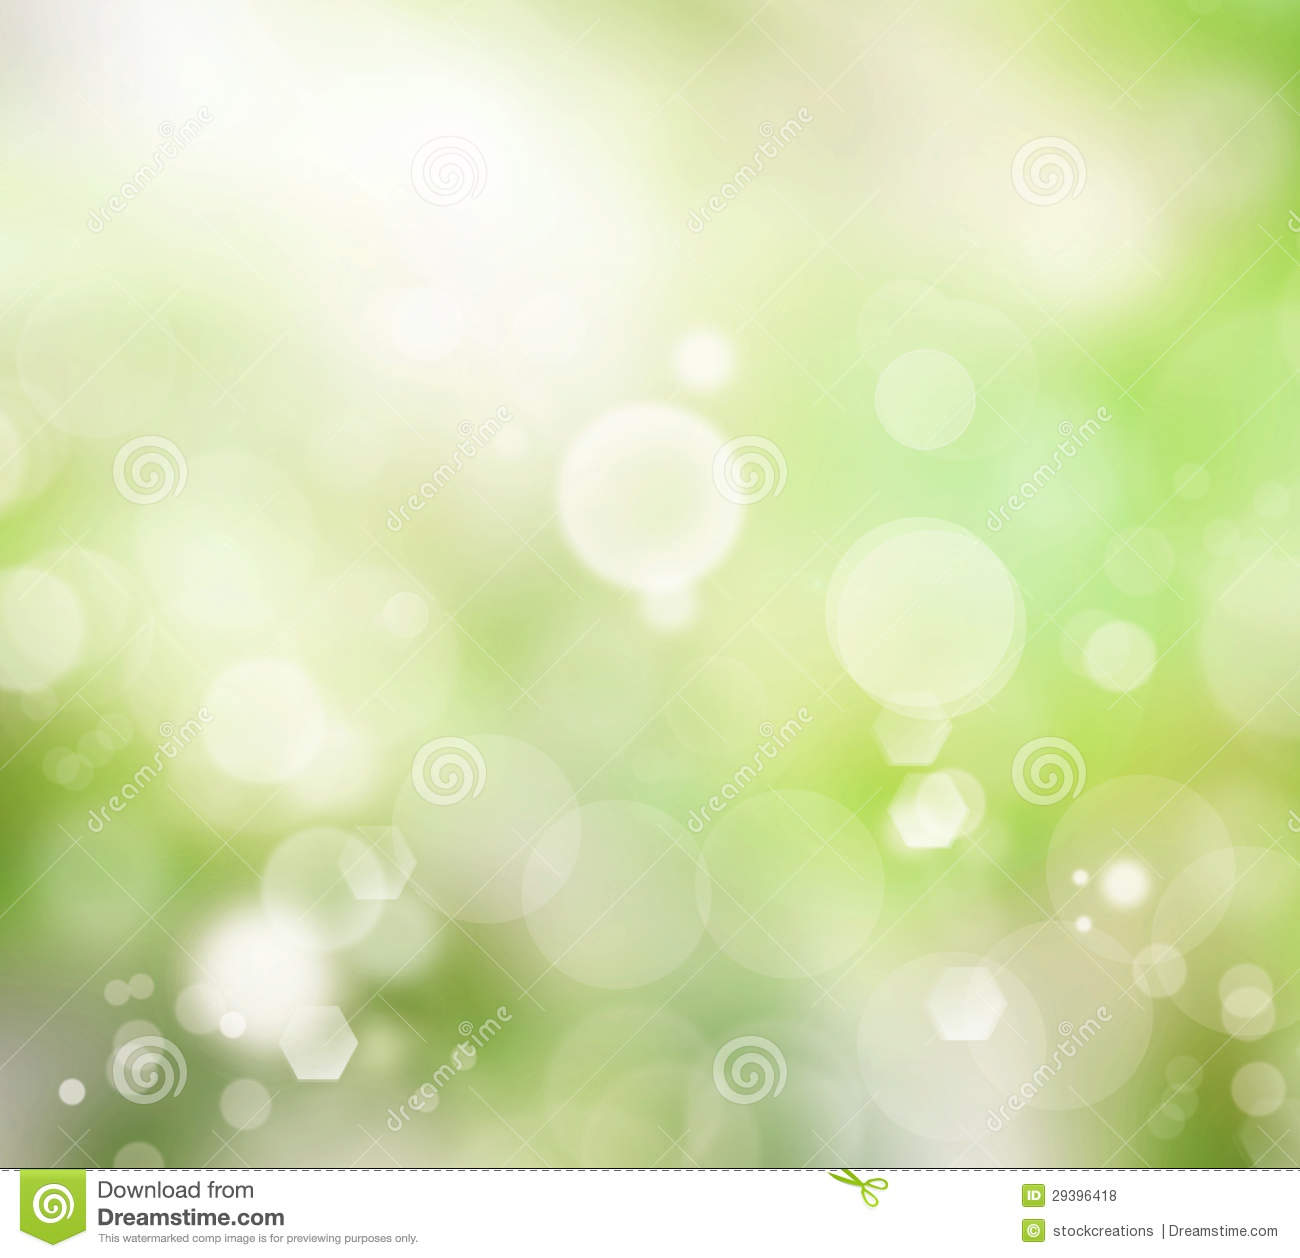 Relaxing Blurred Green Glowy Background Stock Photo